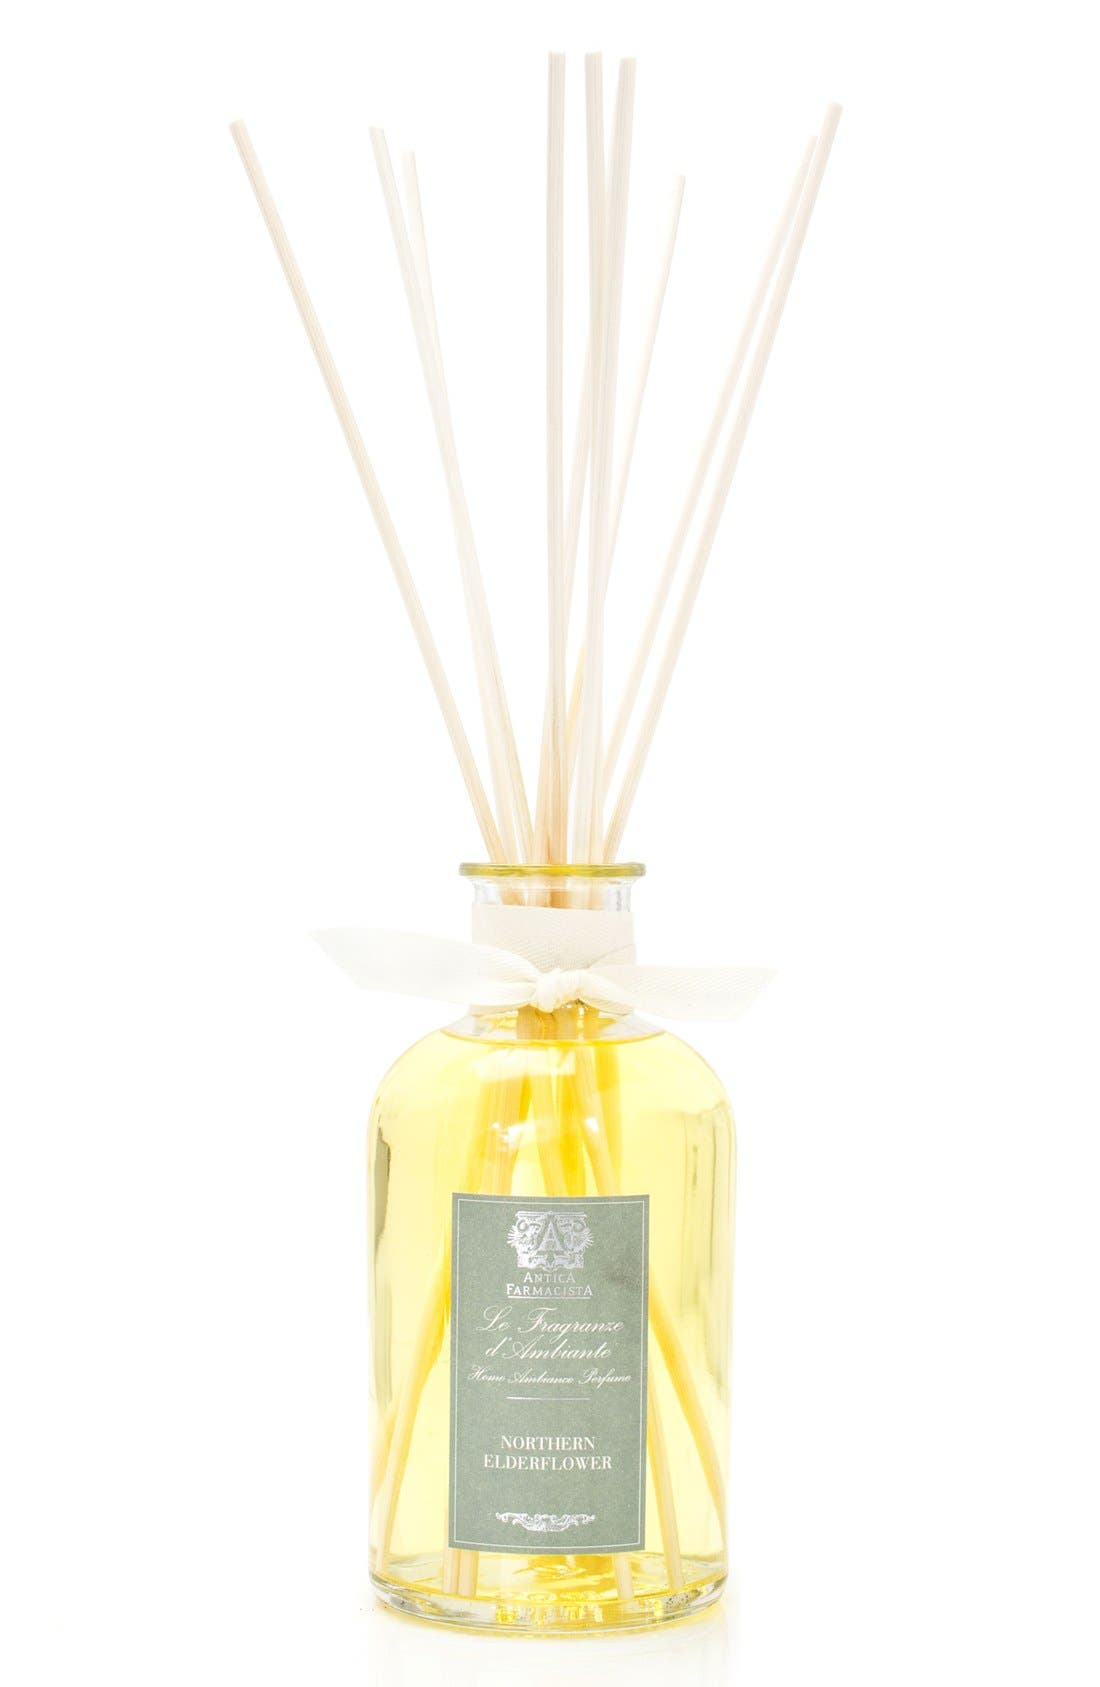 Main Image - Antica Farmacista Northern Elderflower Home Ambiance Fragrance